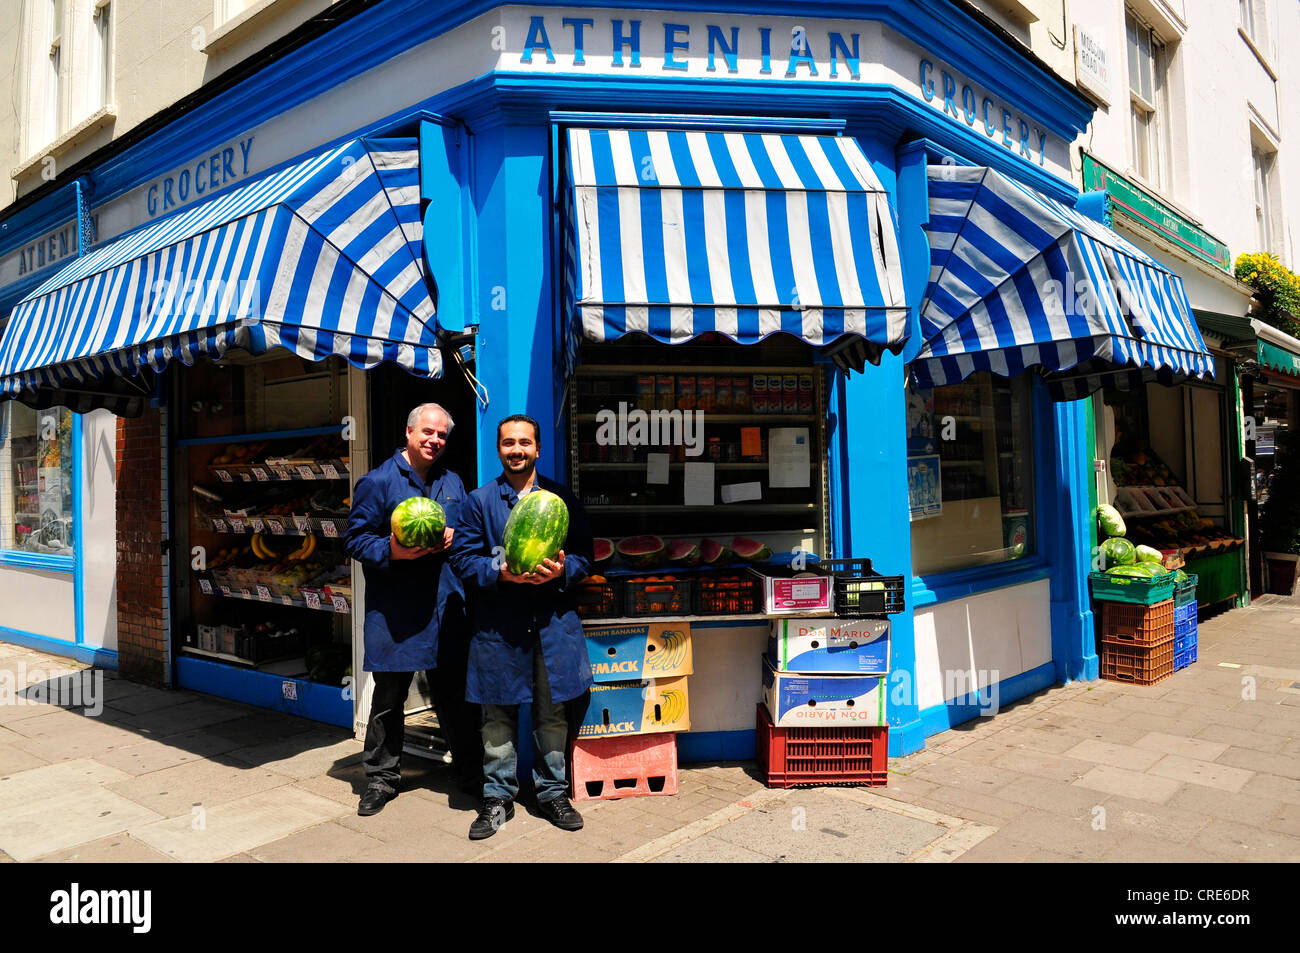 Shopkeepers at the Greek Cypriot Athenian Grocery, near Notting Hill,  London, UK